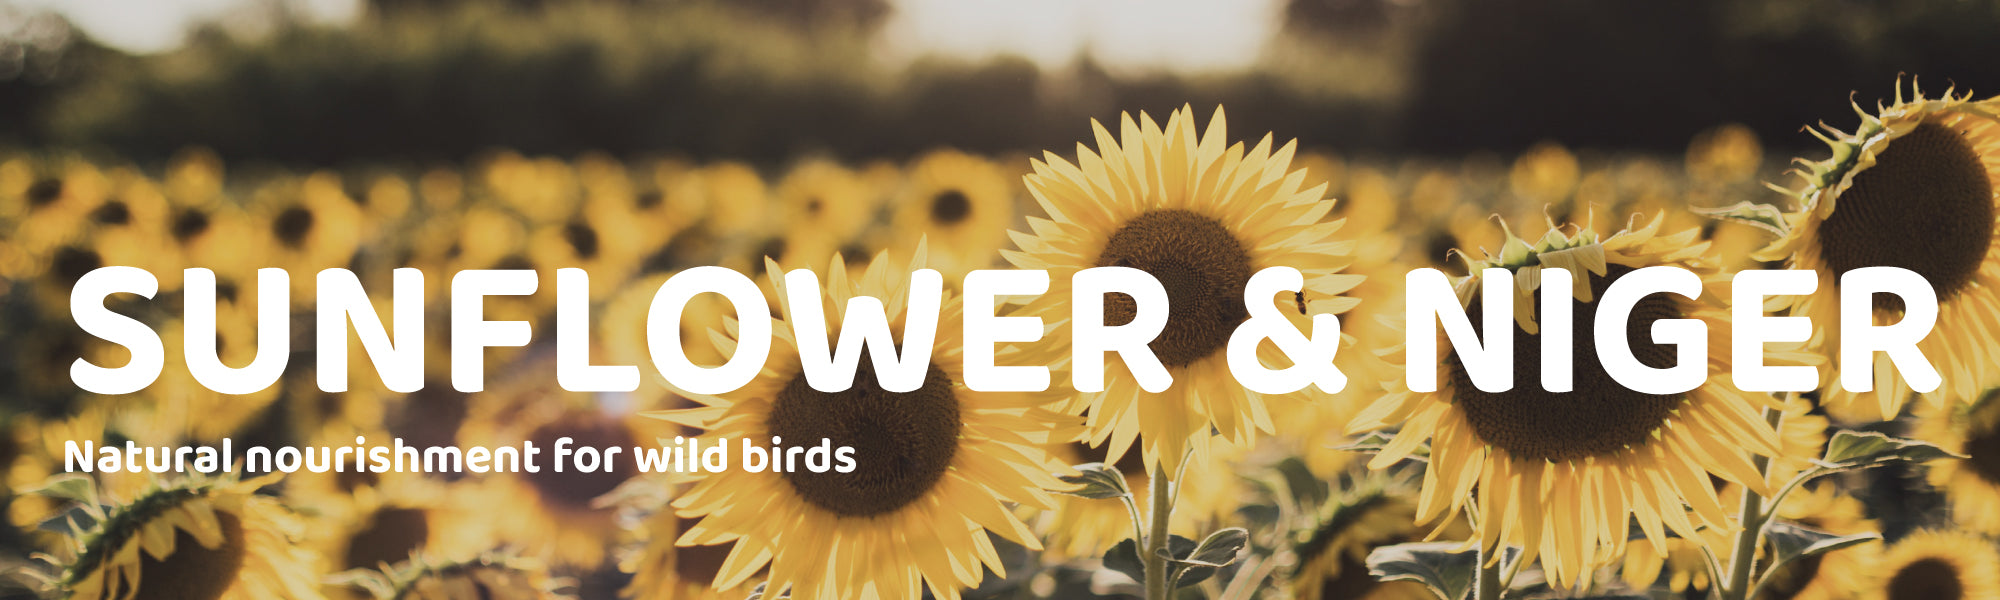 Sunflower & Niger Seed Natural Nourishment for Wild Birds